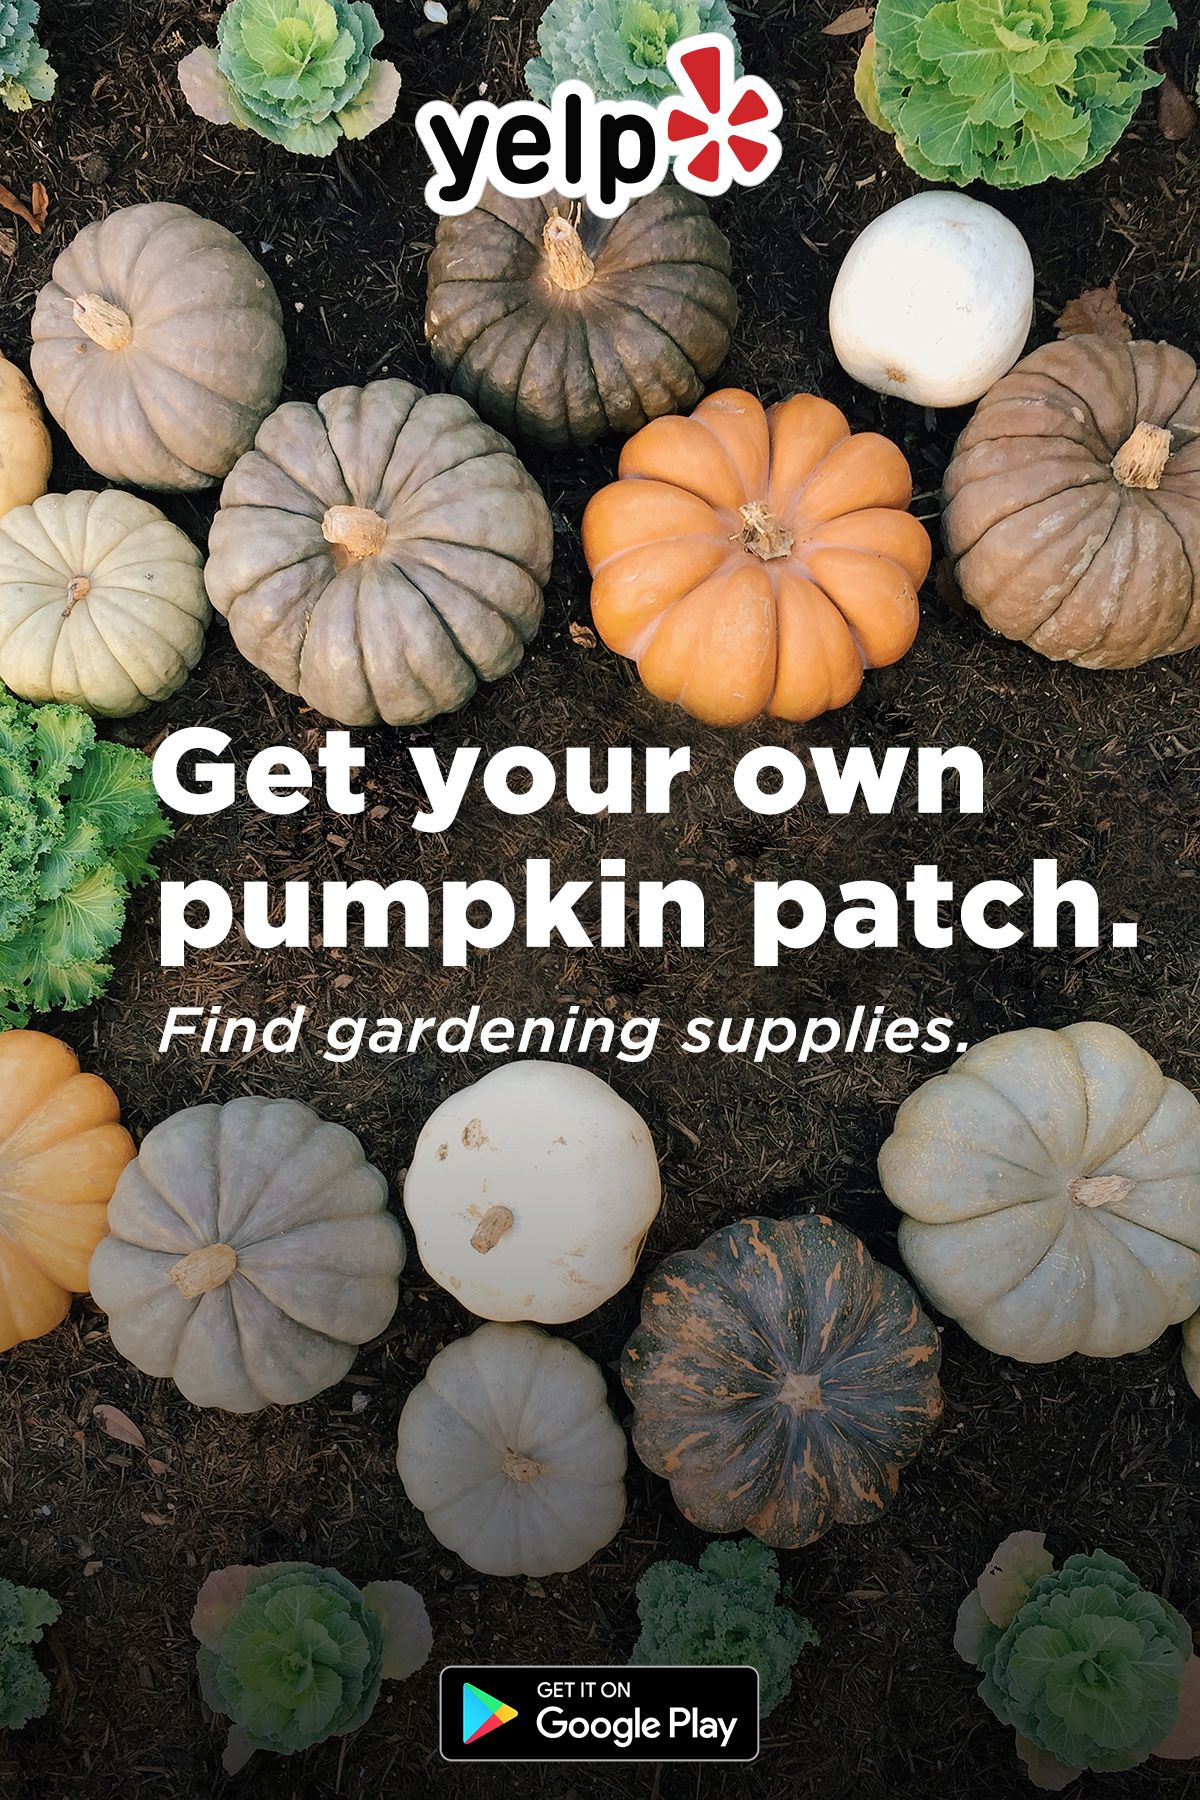 Is your garden ready for fall? Download Yelp to find